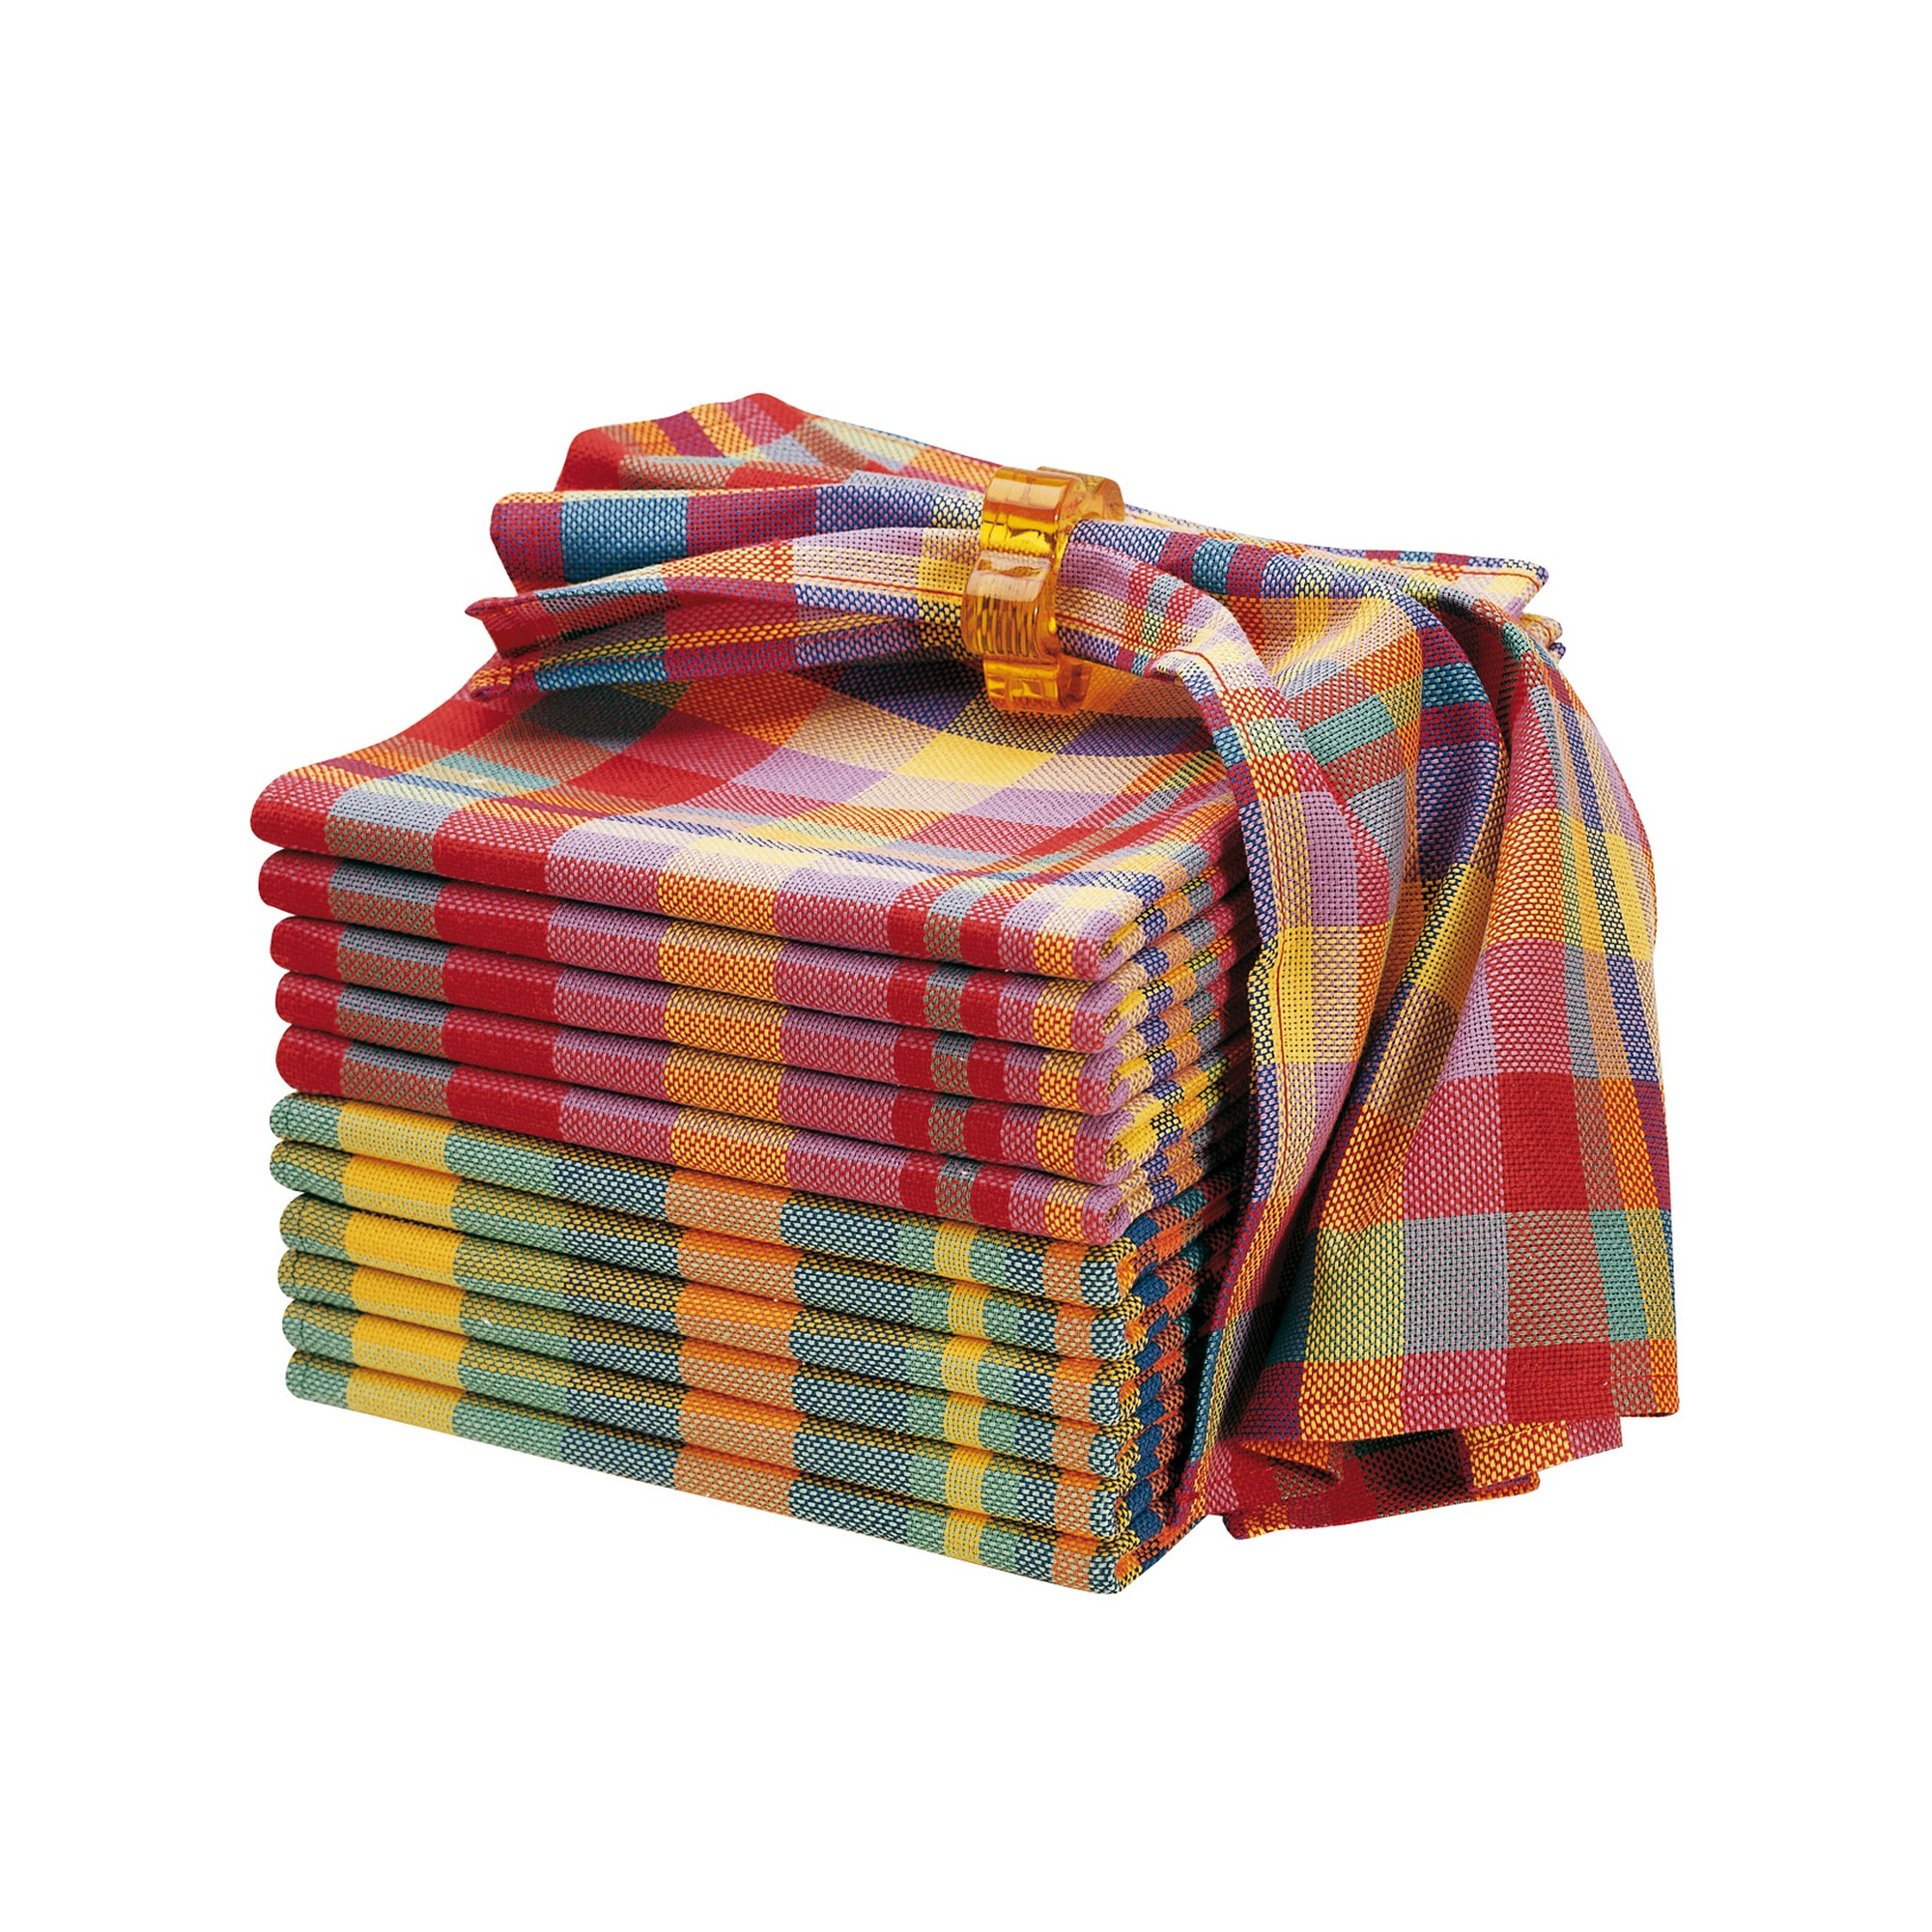 Serviette de table madras lots blancheporte - Lot de serviette de table tissu pas cher ...